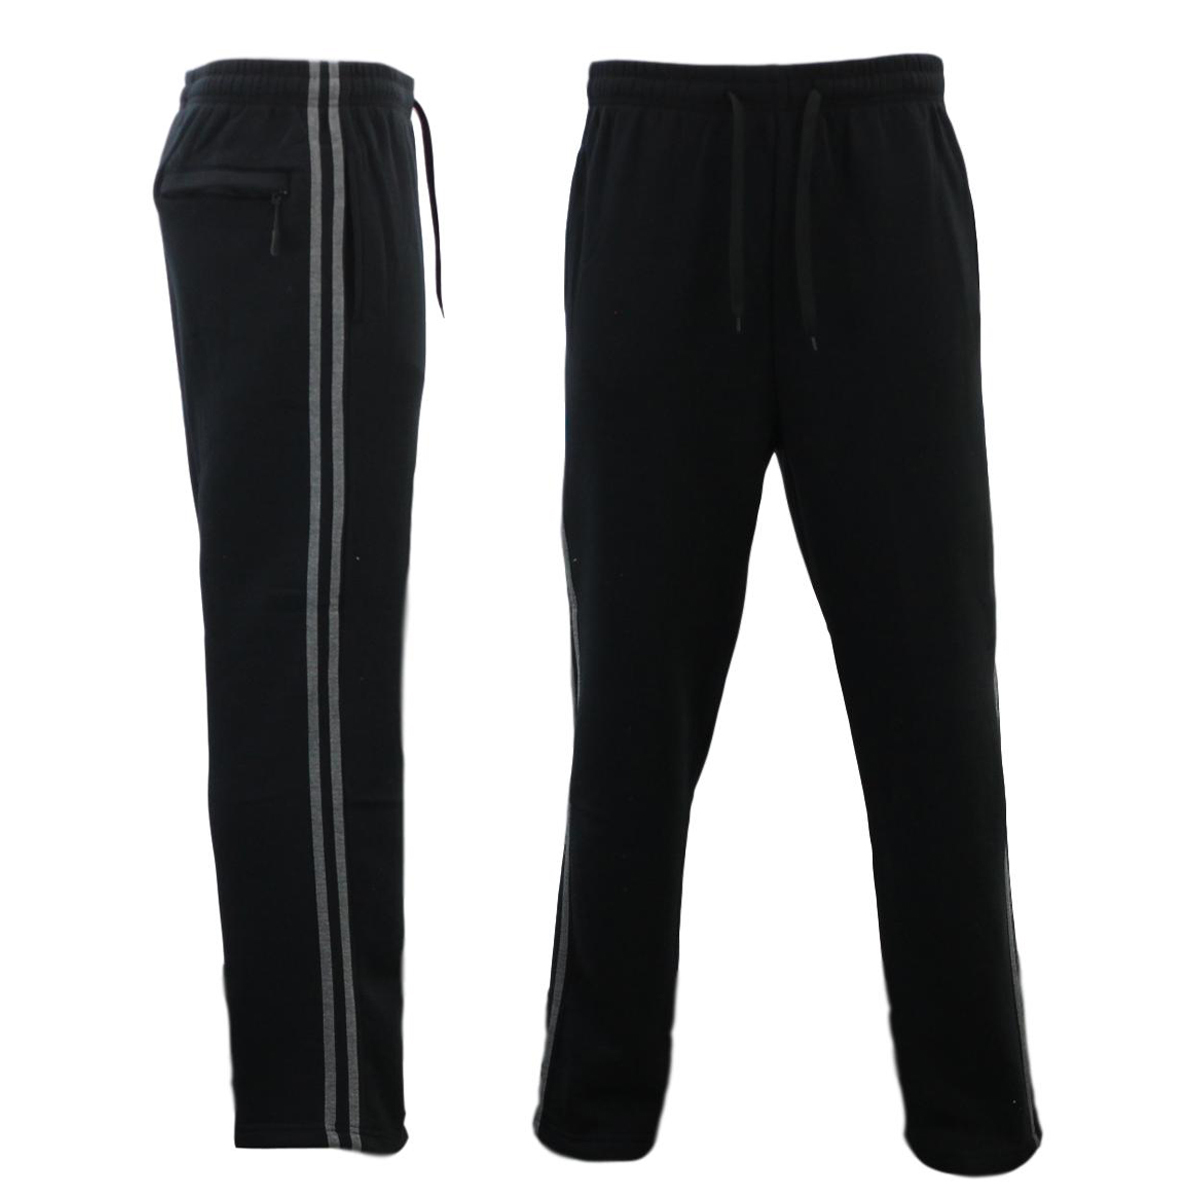 NEW-Men-039-s-Fleece-Lined-Track-Pants-w-Zip-Pocket-Striped-Casual-Track-Suit-Pants thumbnail 8